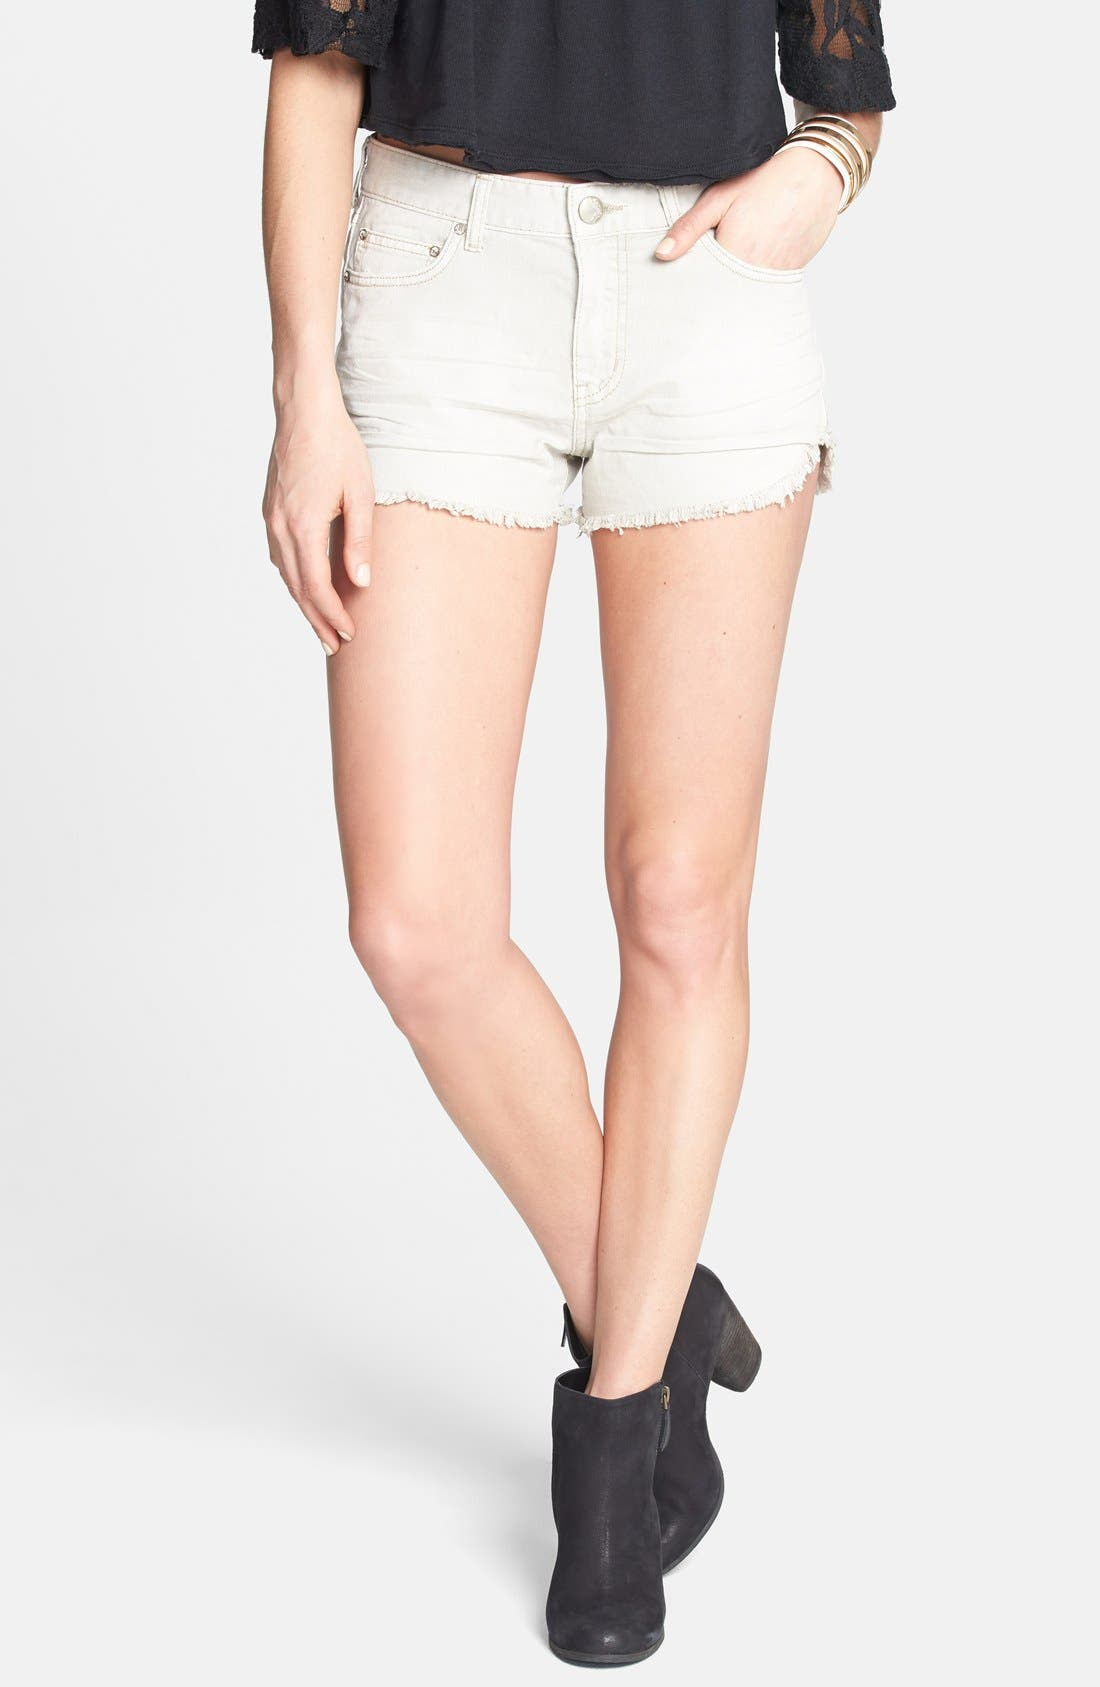 Alternate Image 1 Selected - Free People 'Dolphin' Cutoff Denim Shorts (Chalk)